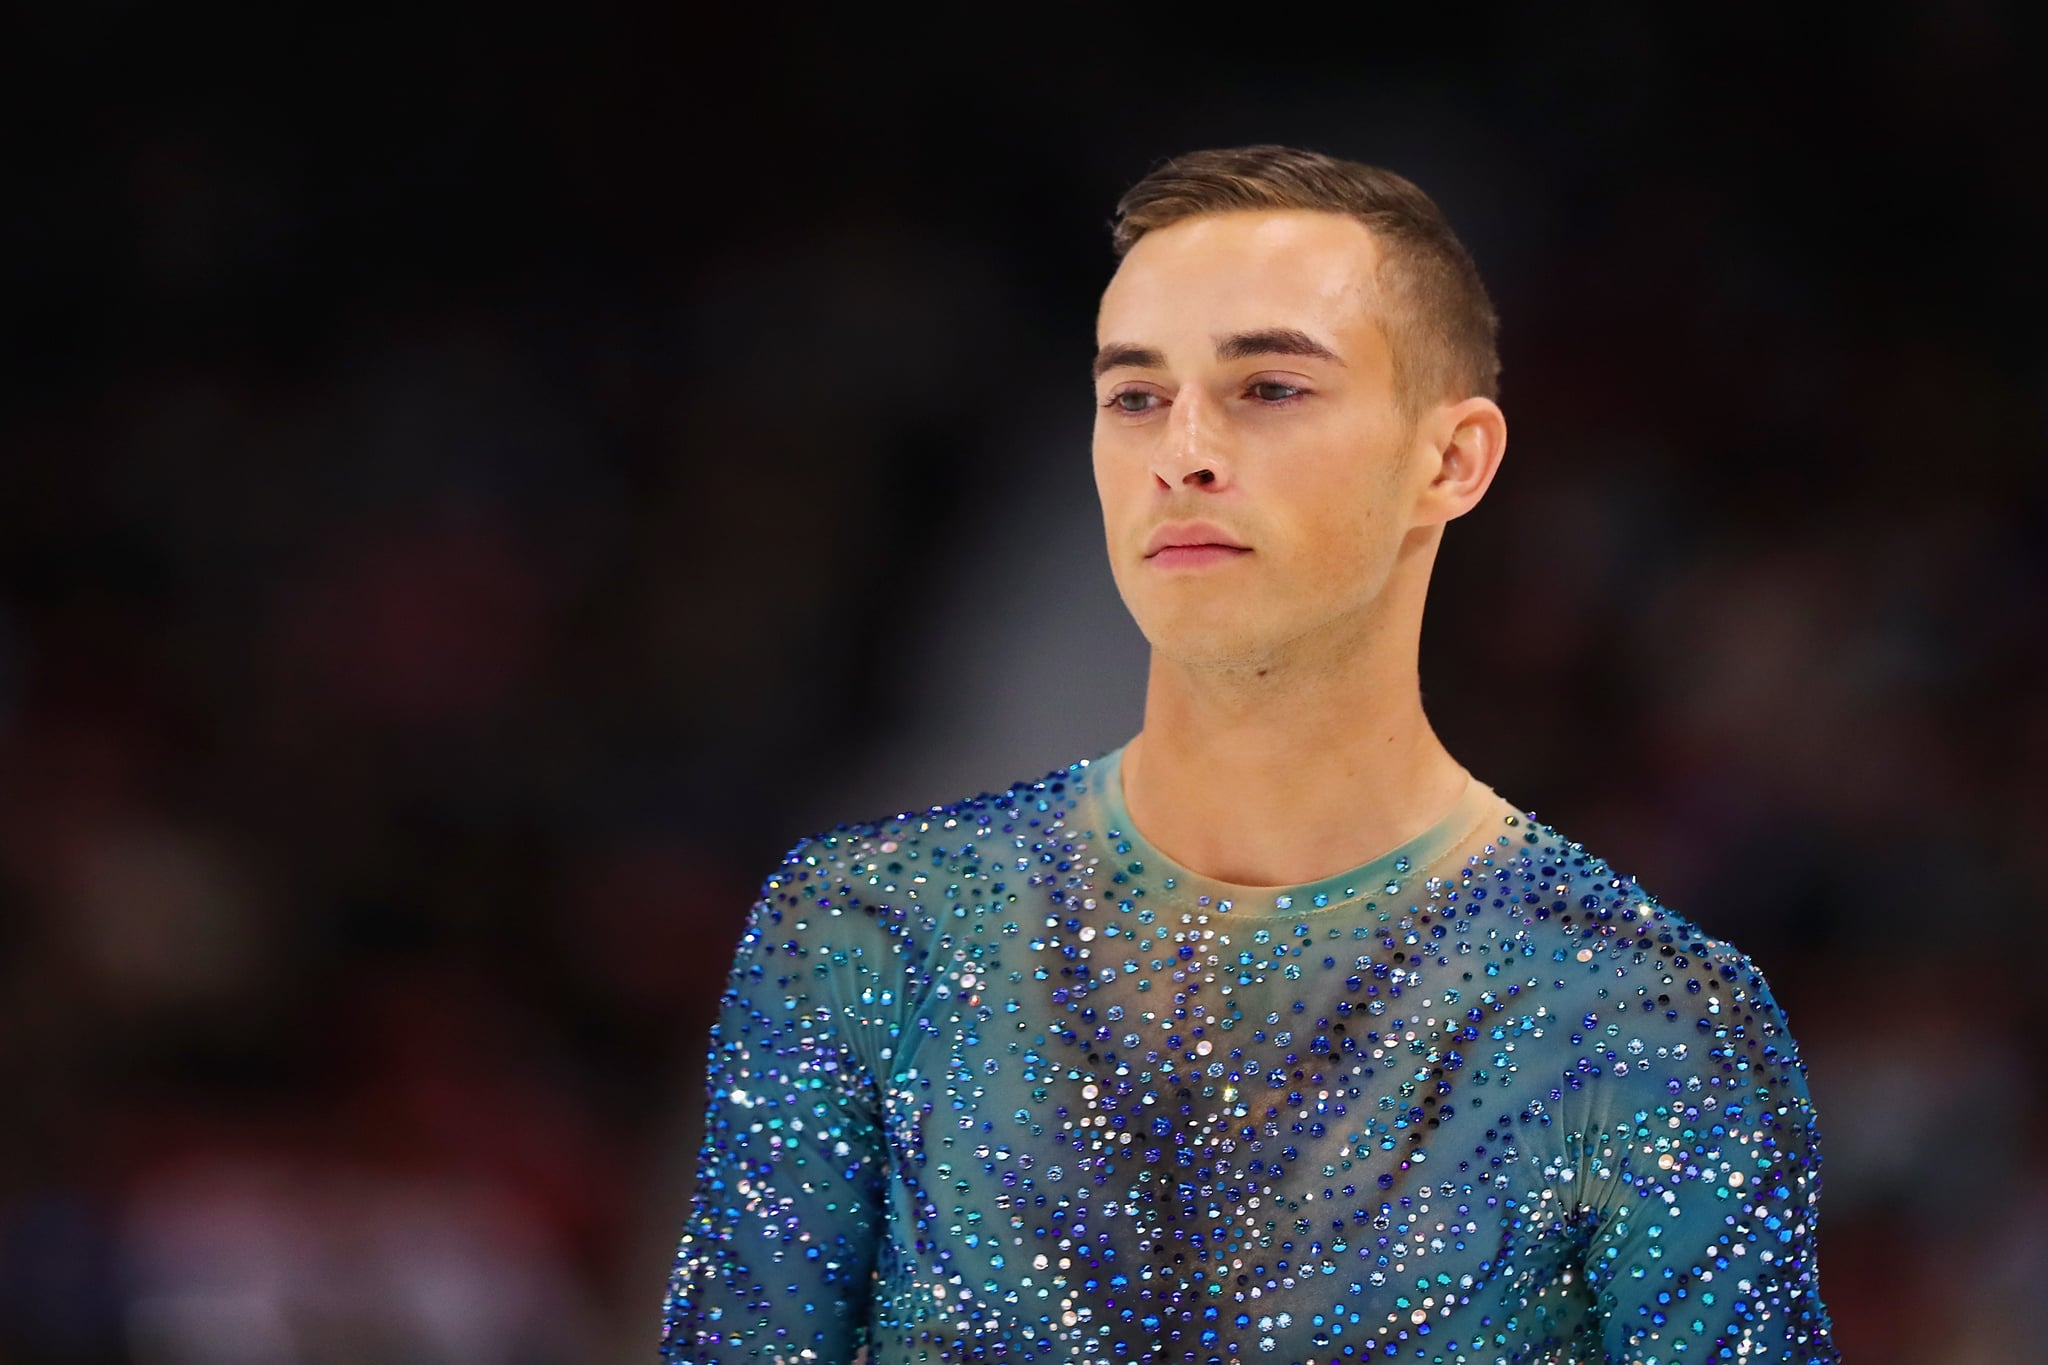 Hillary Clinton is rooting for Adam Rippon at the 2018 Winter Olympics